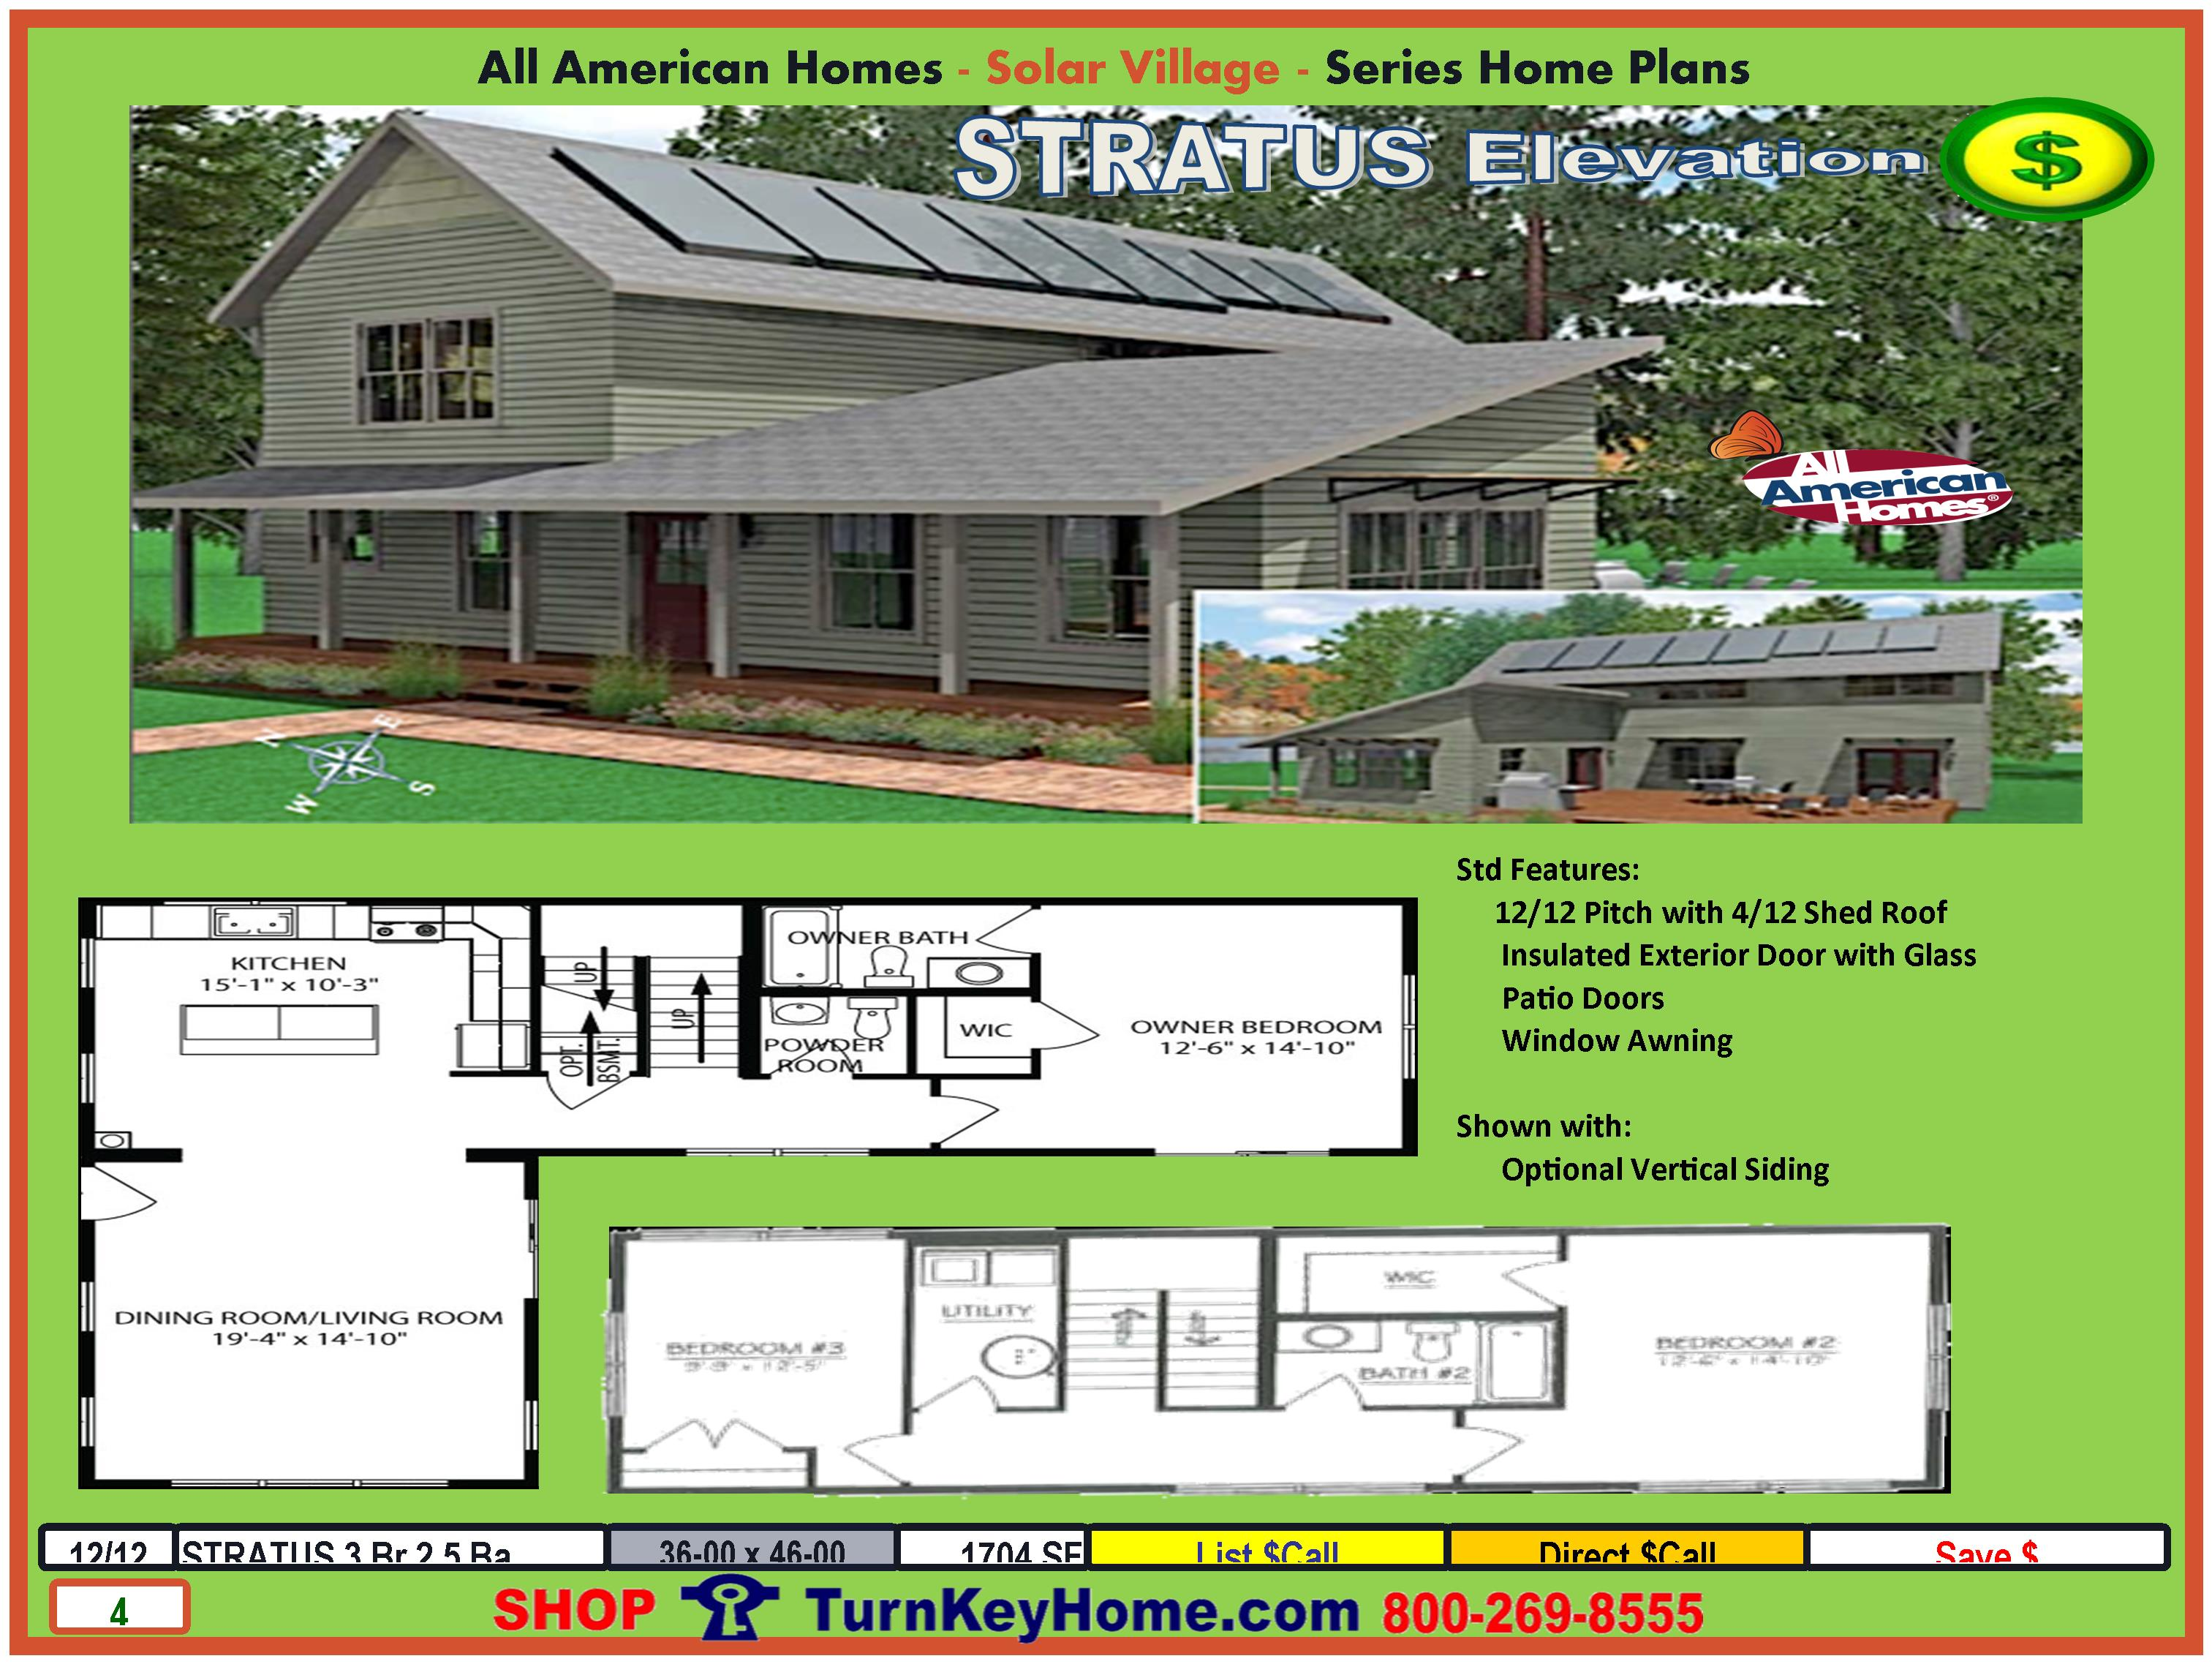 stratus solar collection modular home design from